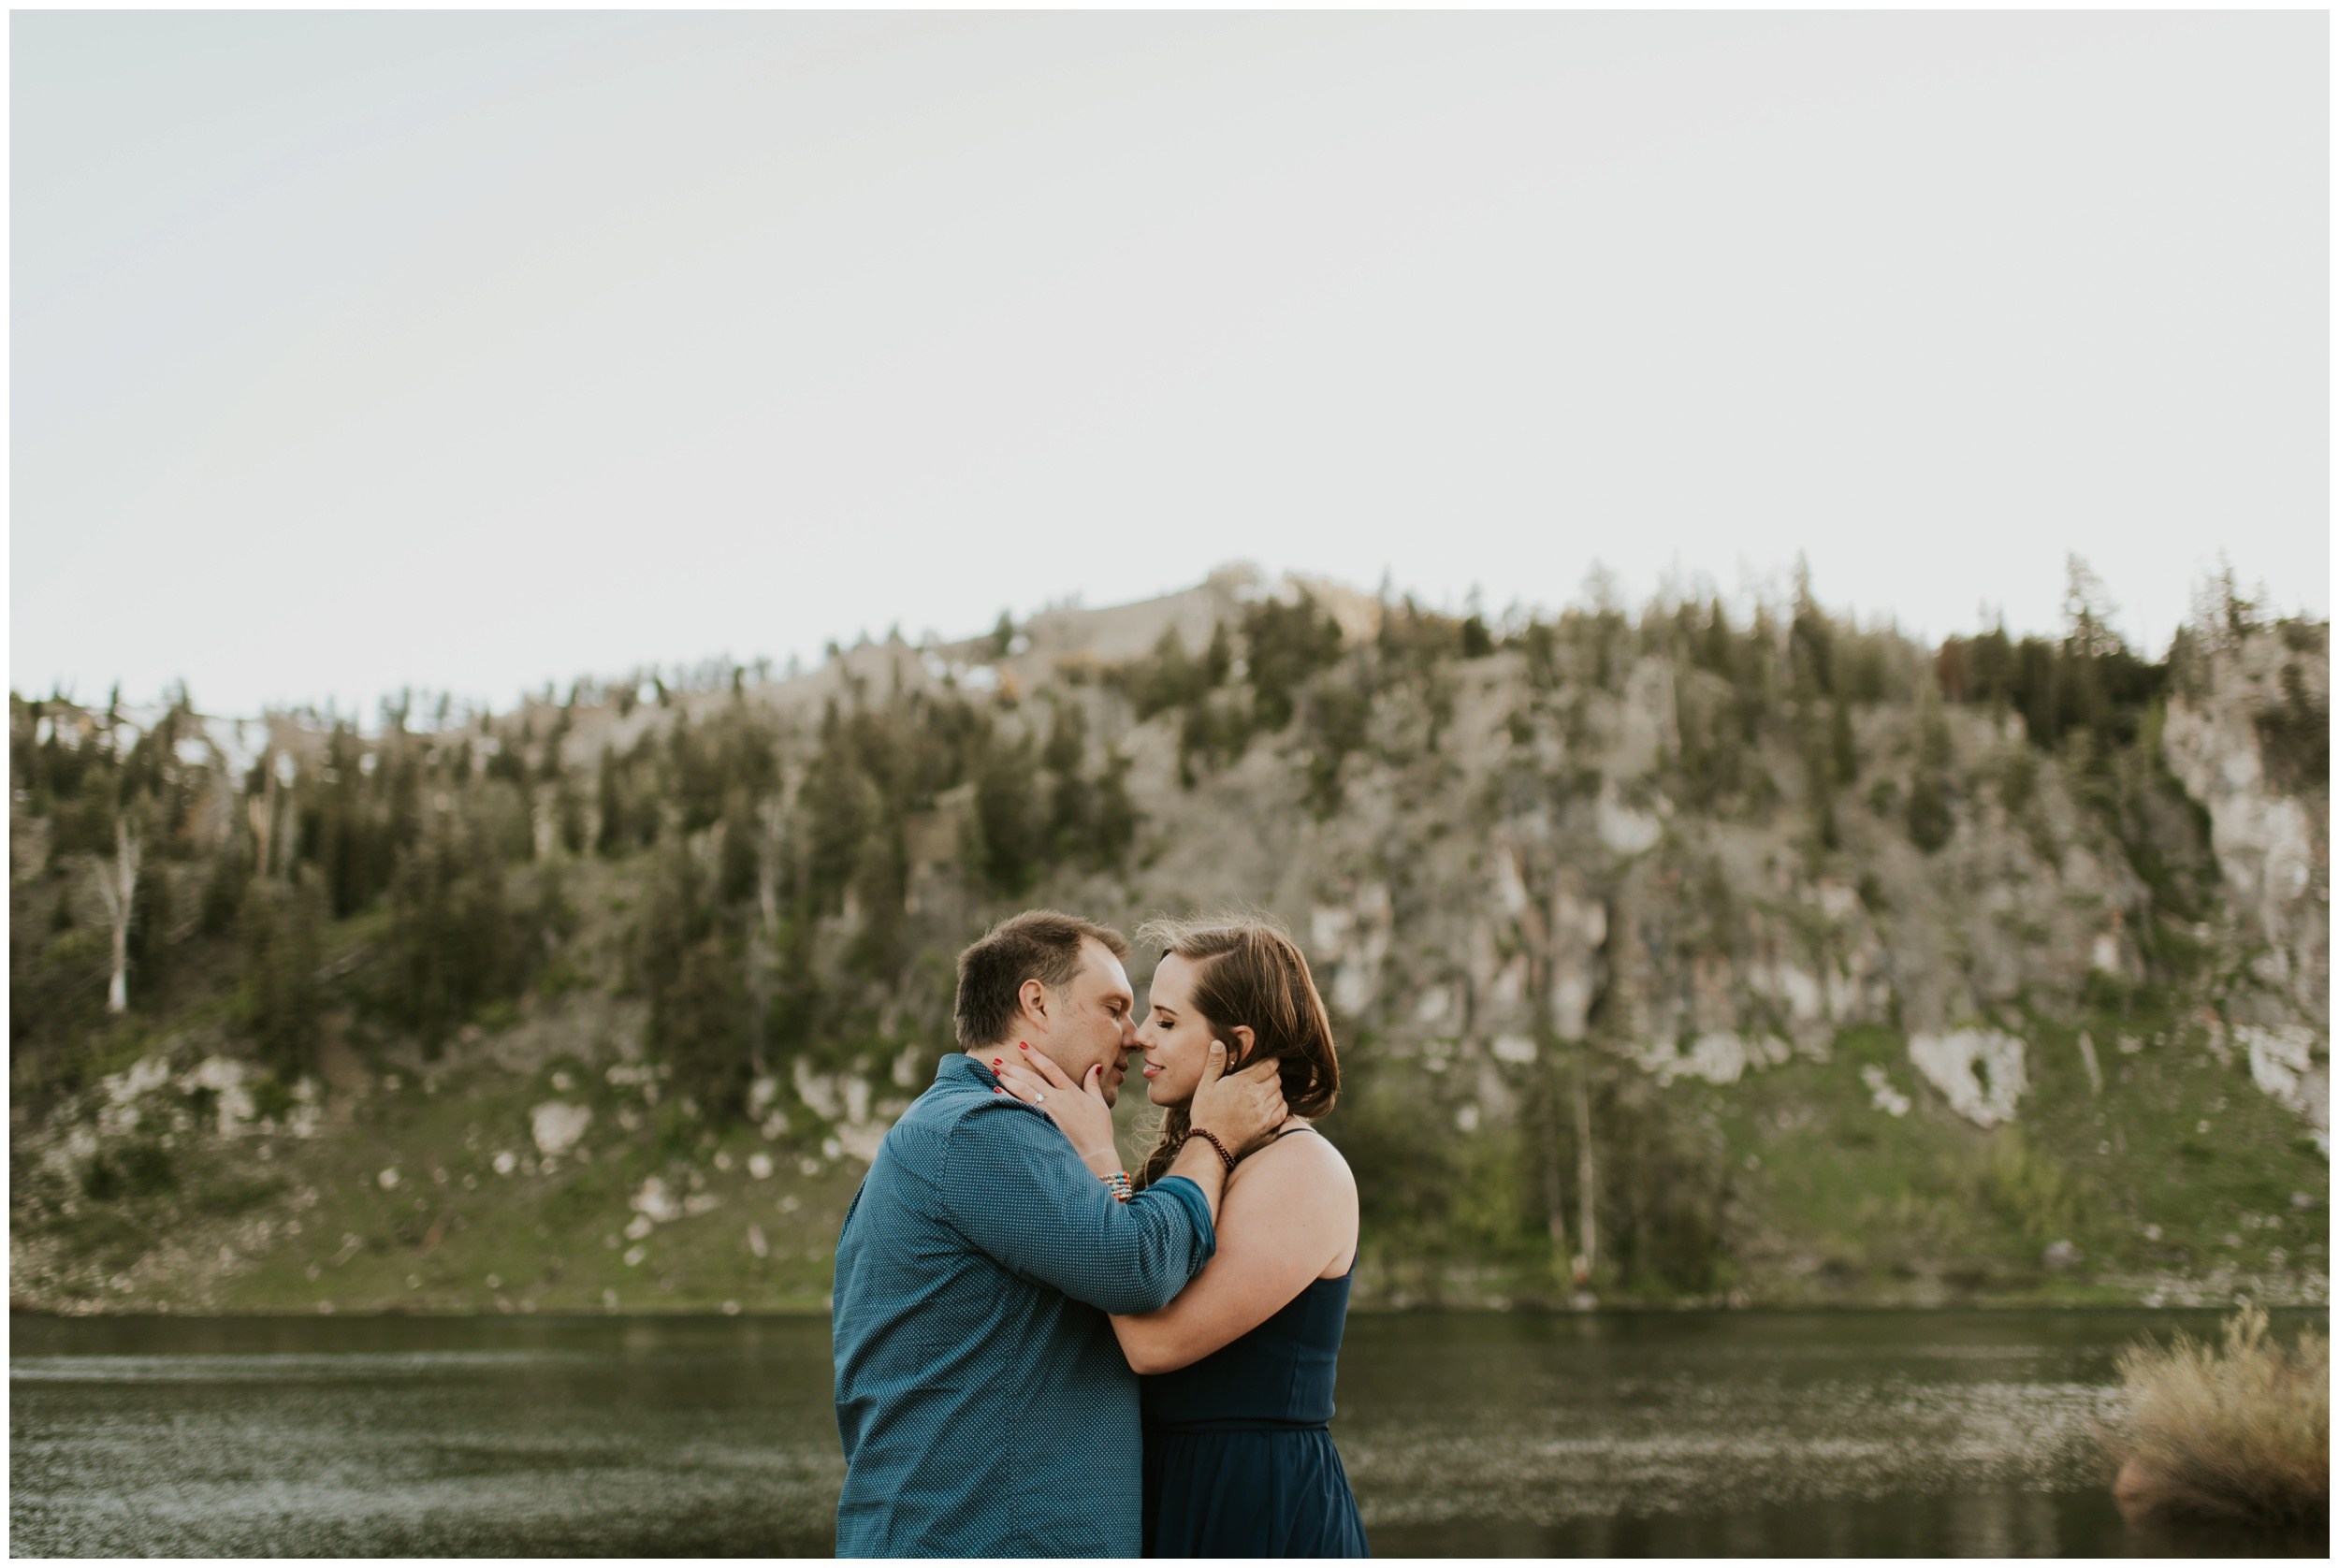 kissing at Tony grove campground Logan utah. engagement photographer.